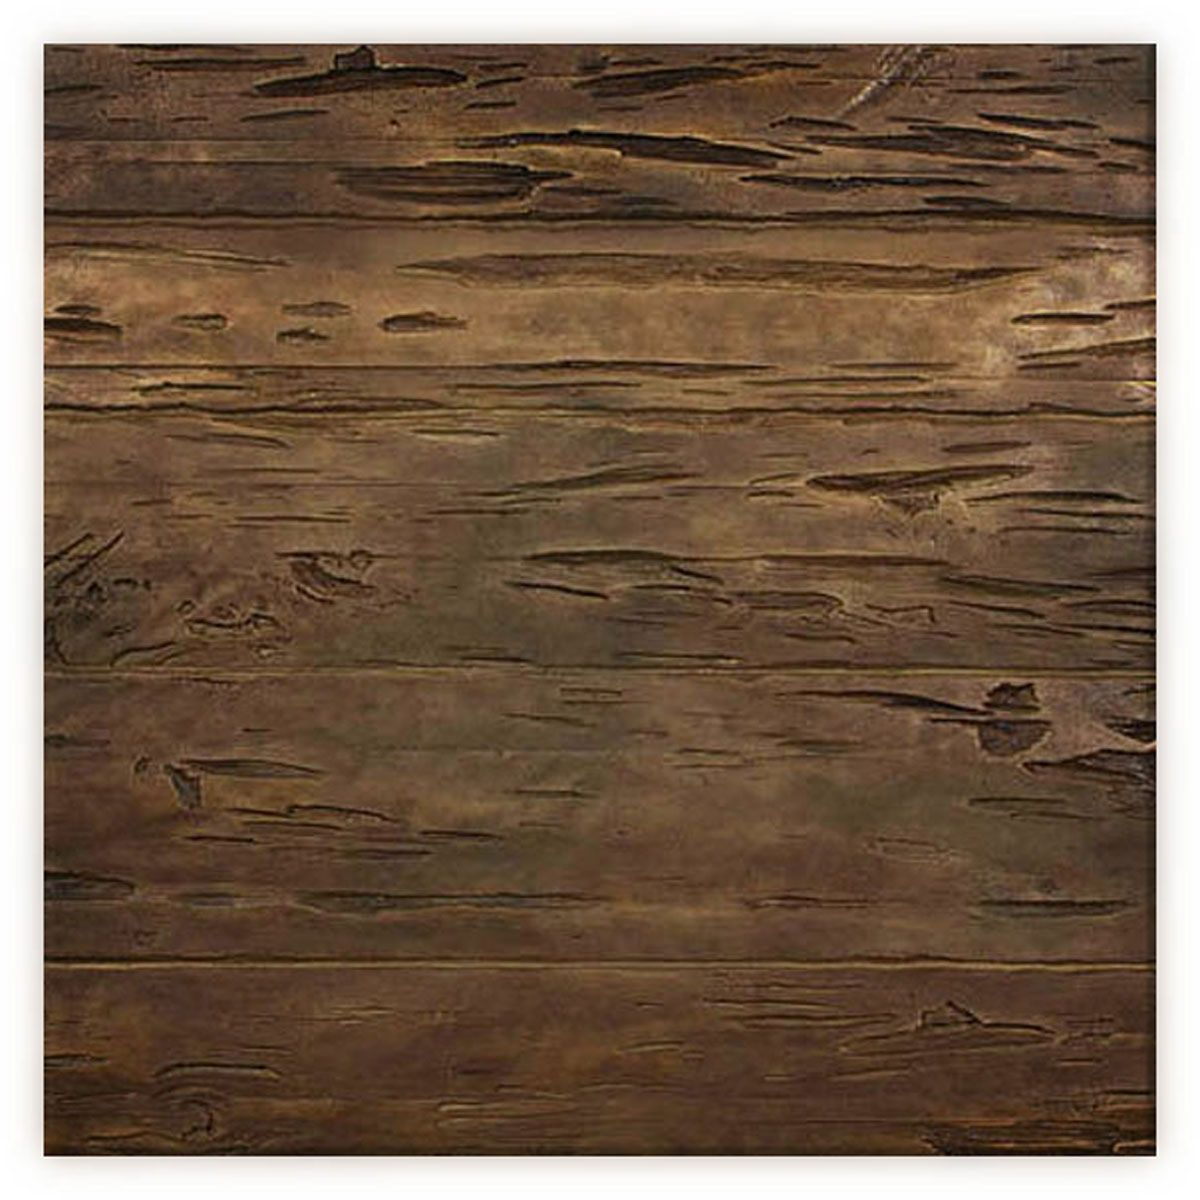 6 W X 6 H Pecky Cypress Endurathane Faux Wood Siding Panel Sample Weathered Brown 19 9900 Pecky Cypress Wood Panel Siding Wood Siding